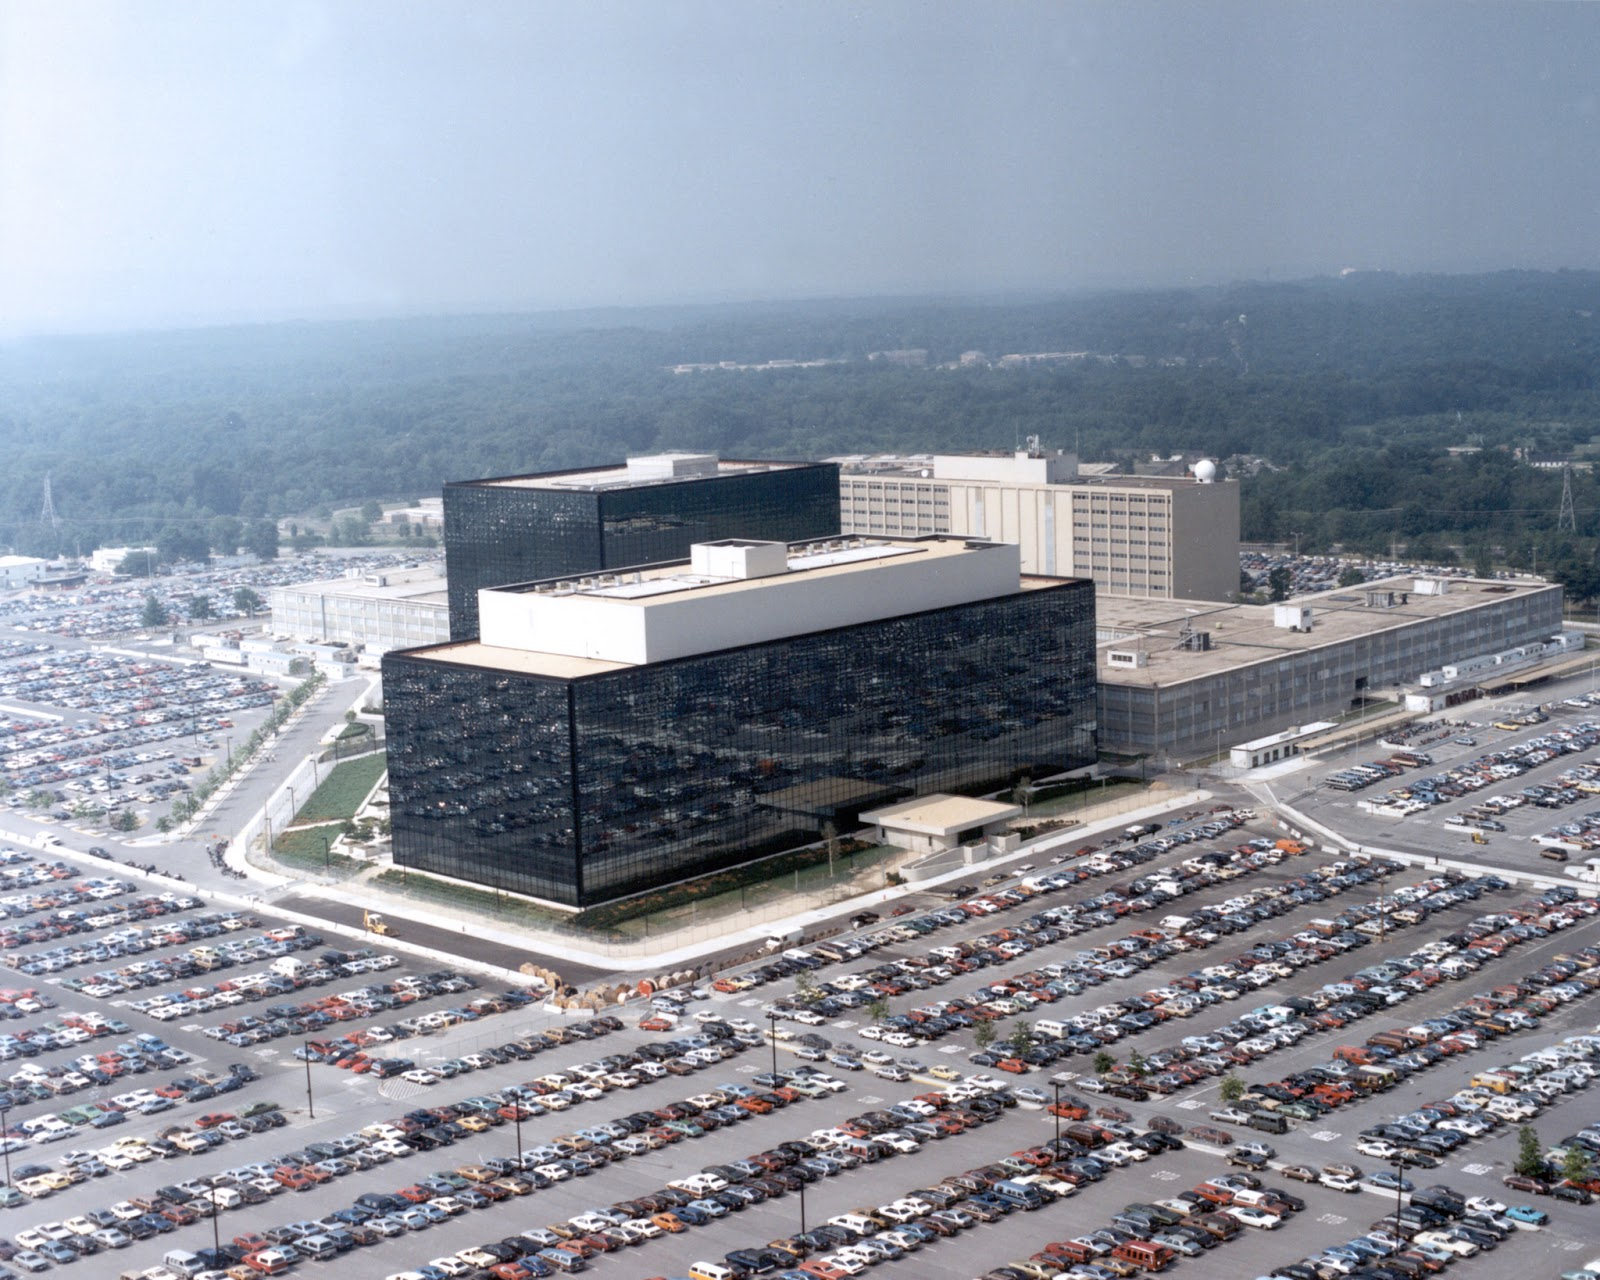 The U.S. government in the boot of the NSA